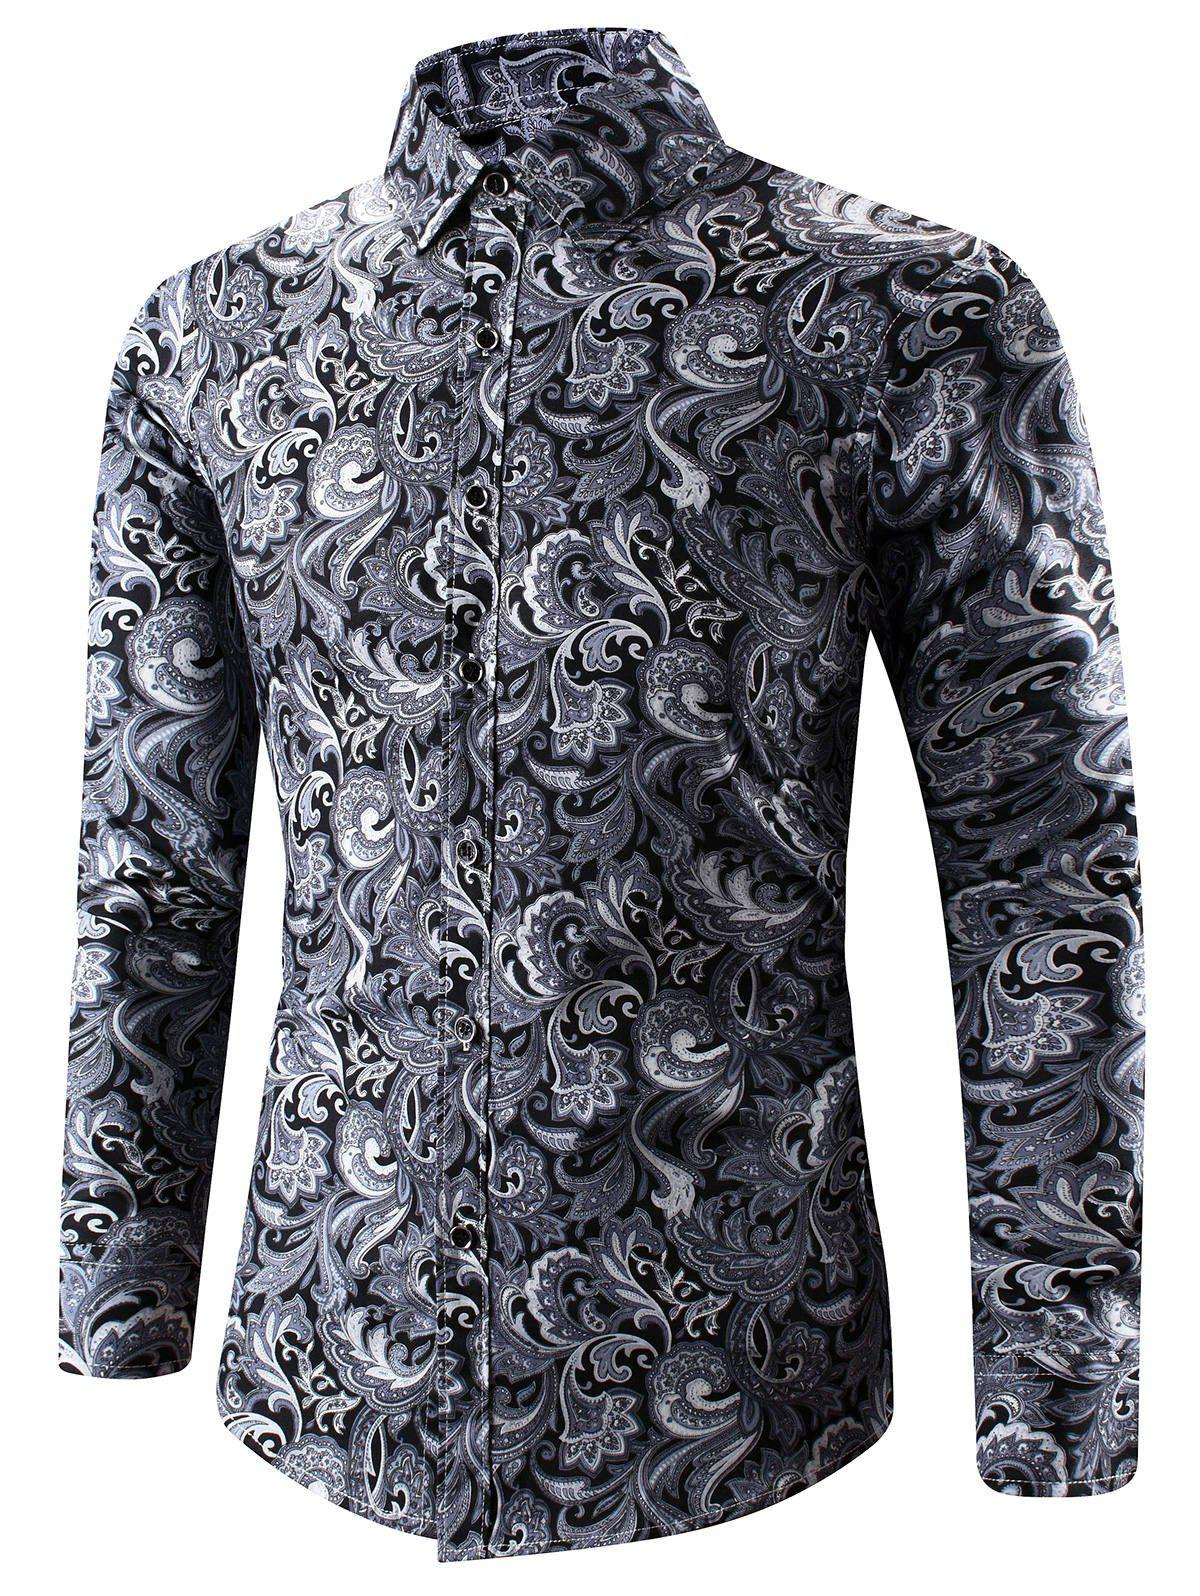 Turn-Down Collar 3D Paisley Print Long Sleeve ShirtMEN<br><br>Size: 2XL; Color: BLACK; Shirts Type: Casual Shirts; Material: Cotton,Polyester; Sleeve Length: Full; Collar: Turn-down Collar; Weight: 0.1860kg; Package Contents: 1 x Shirt;